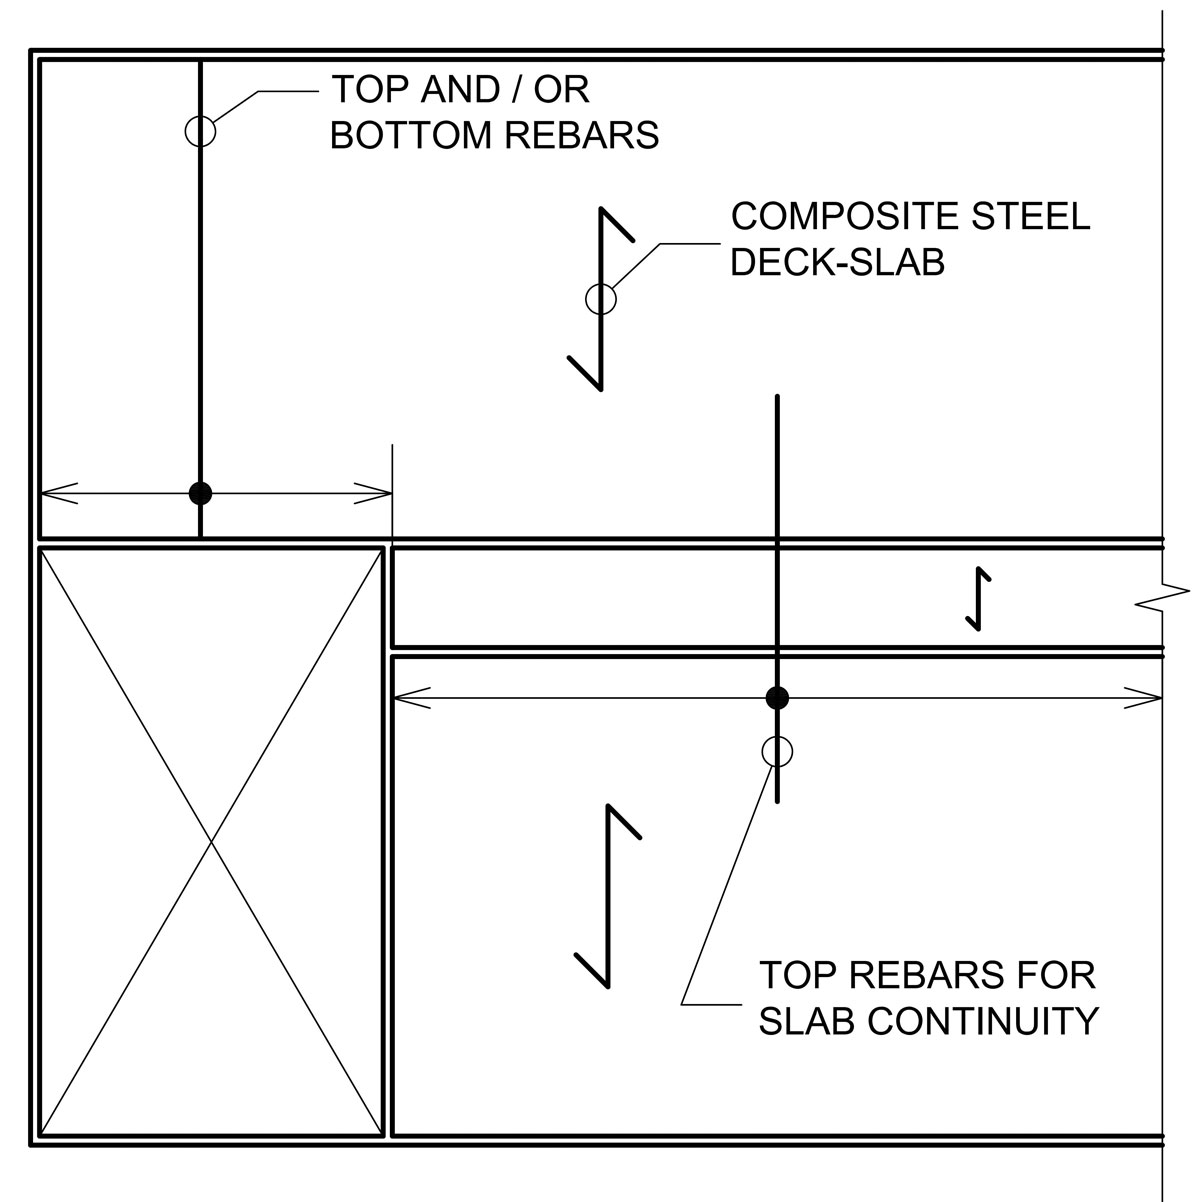 Structure Magazine Composite Steel Deck Slabs With Supplemental Reinforcing Bars